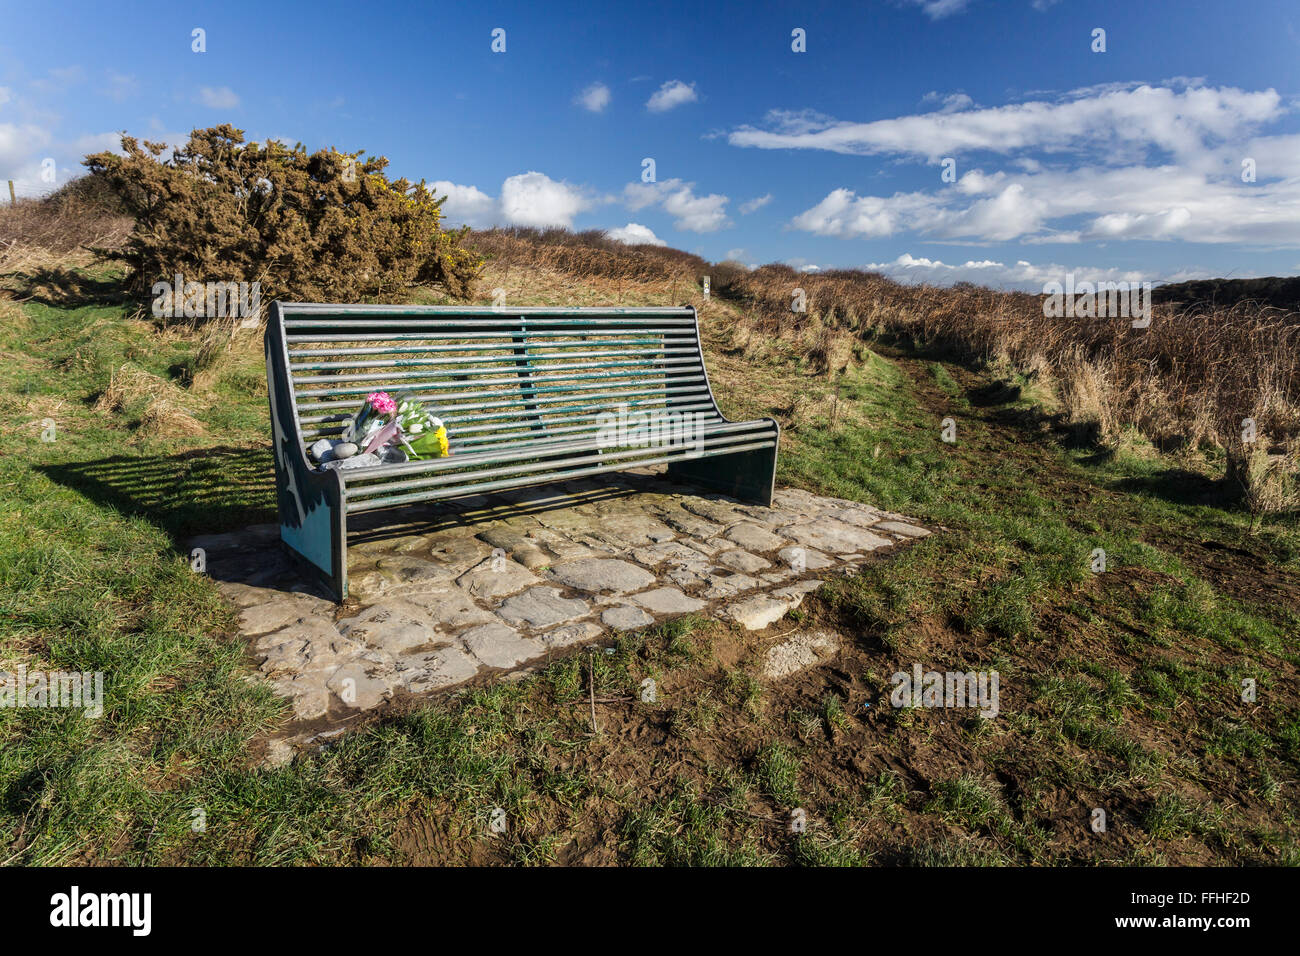 An empty bench with fresh cultivated flowers left on the seat. The bench is on the headland and looks out to sea. - Stock Image